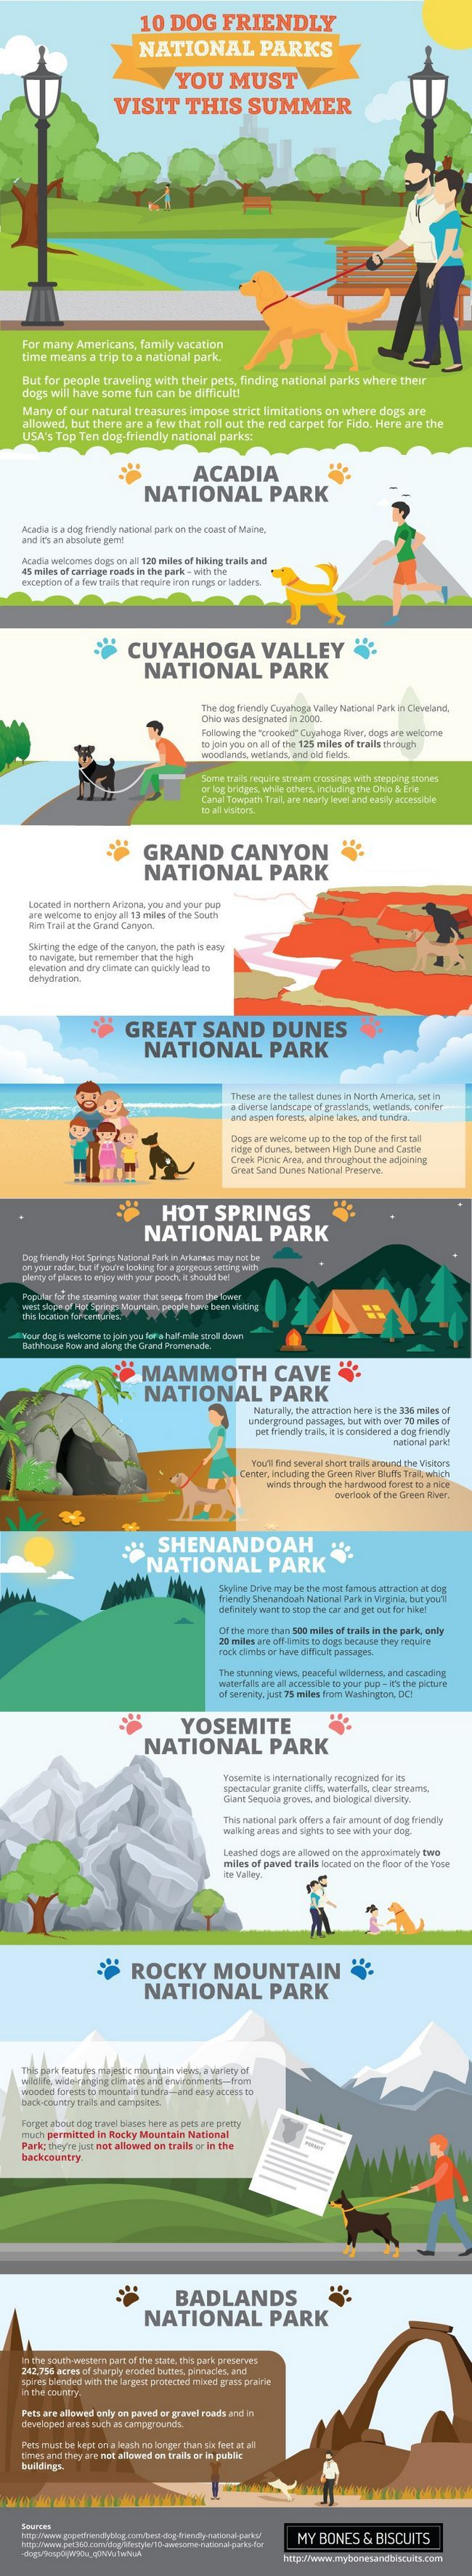 Dog friendly us national parks: make the most of your summer!